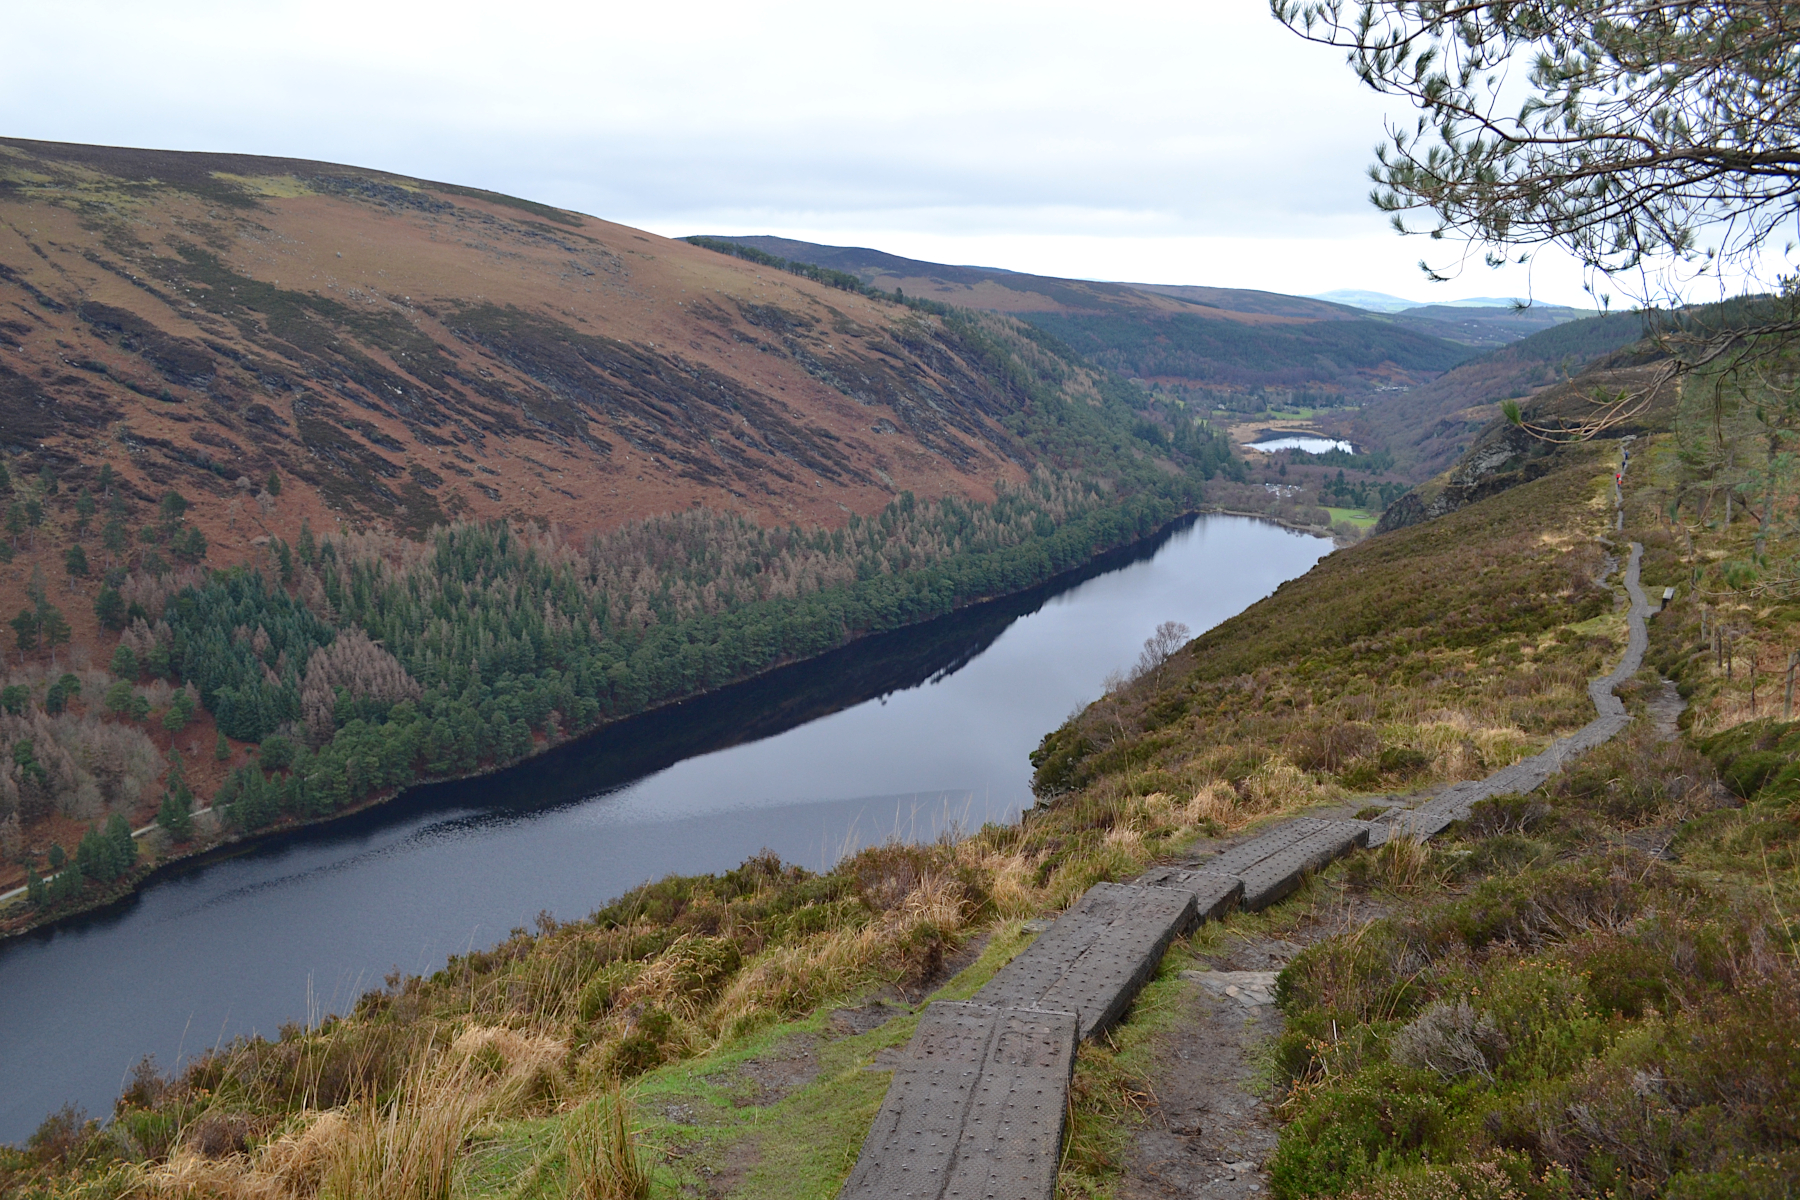 Panorama du paysage de l'upperlake à Glendalough, Wicklow montains national parc, ireland